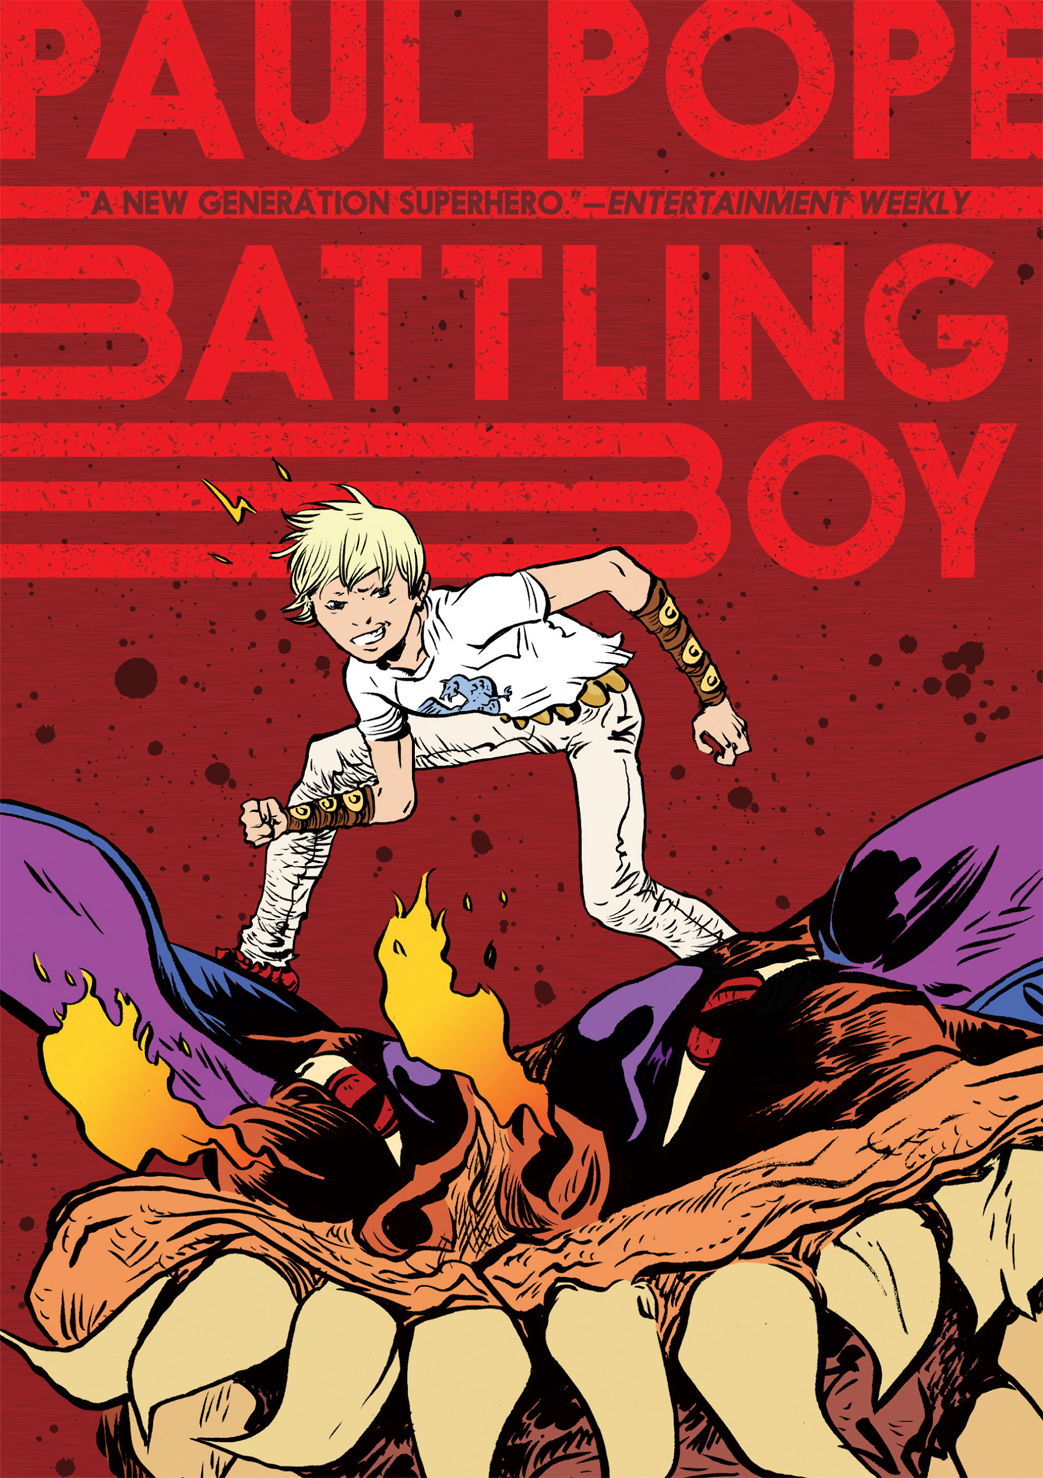 2013-10-04-battlingboy.jpg